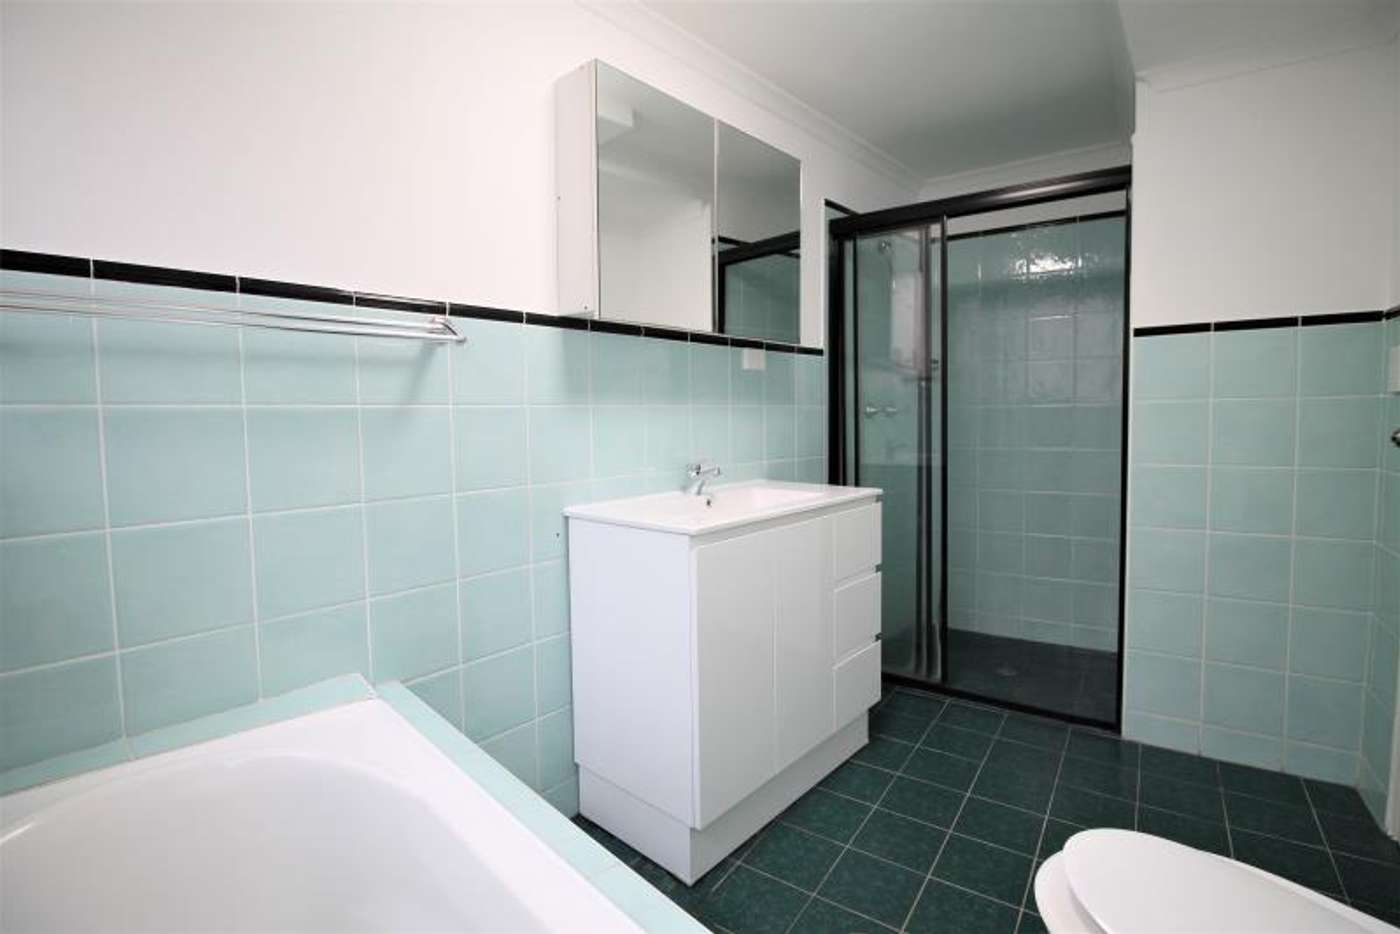 Seventh view of Homely apartment listing, 4/1-3 Tay Street, Kensington NSW 2033